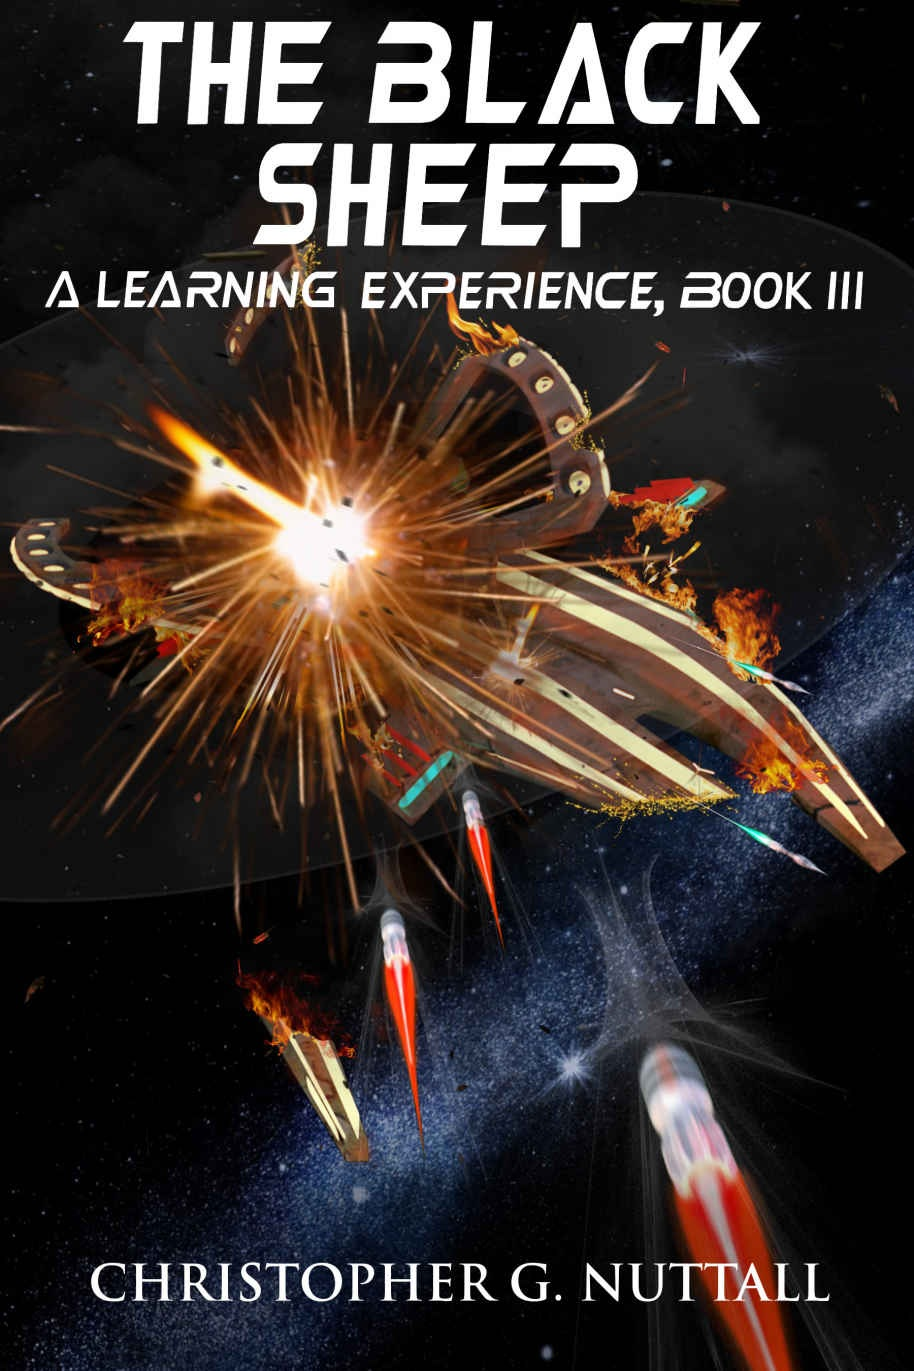 The Black Sheep – A new enjoyable adventure in the A Learning Experience series by Nuttall